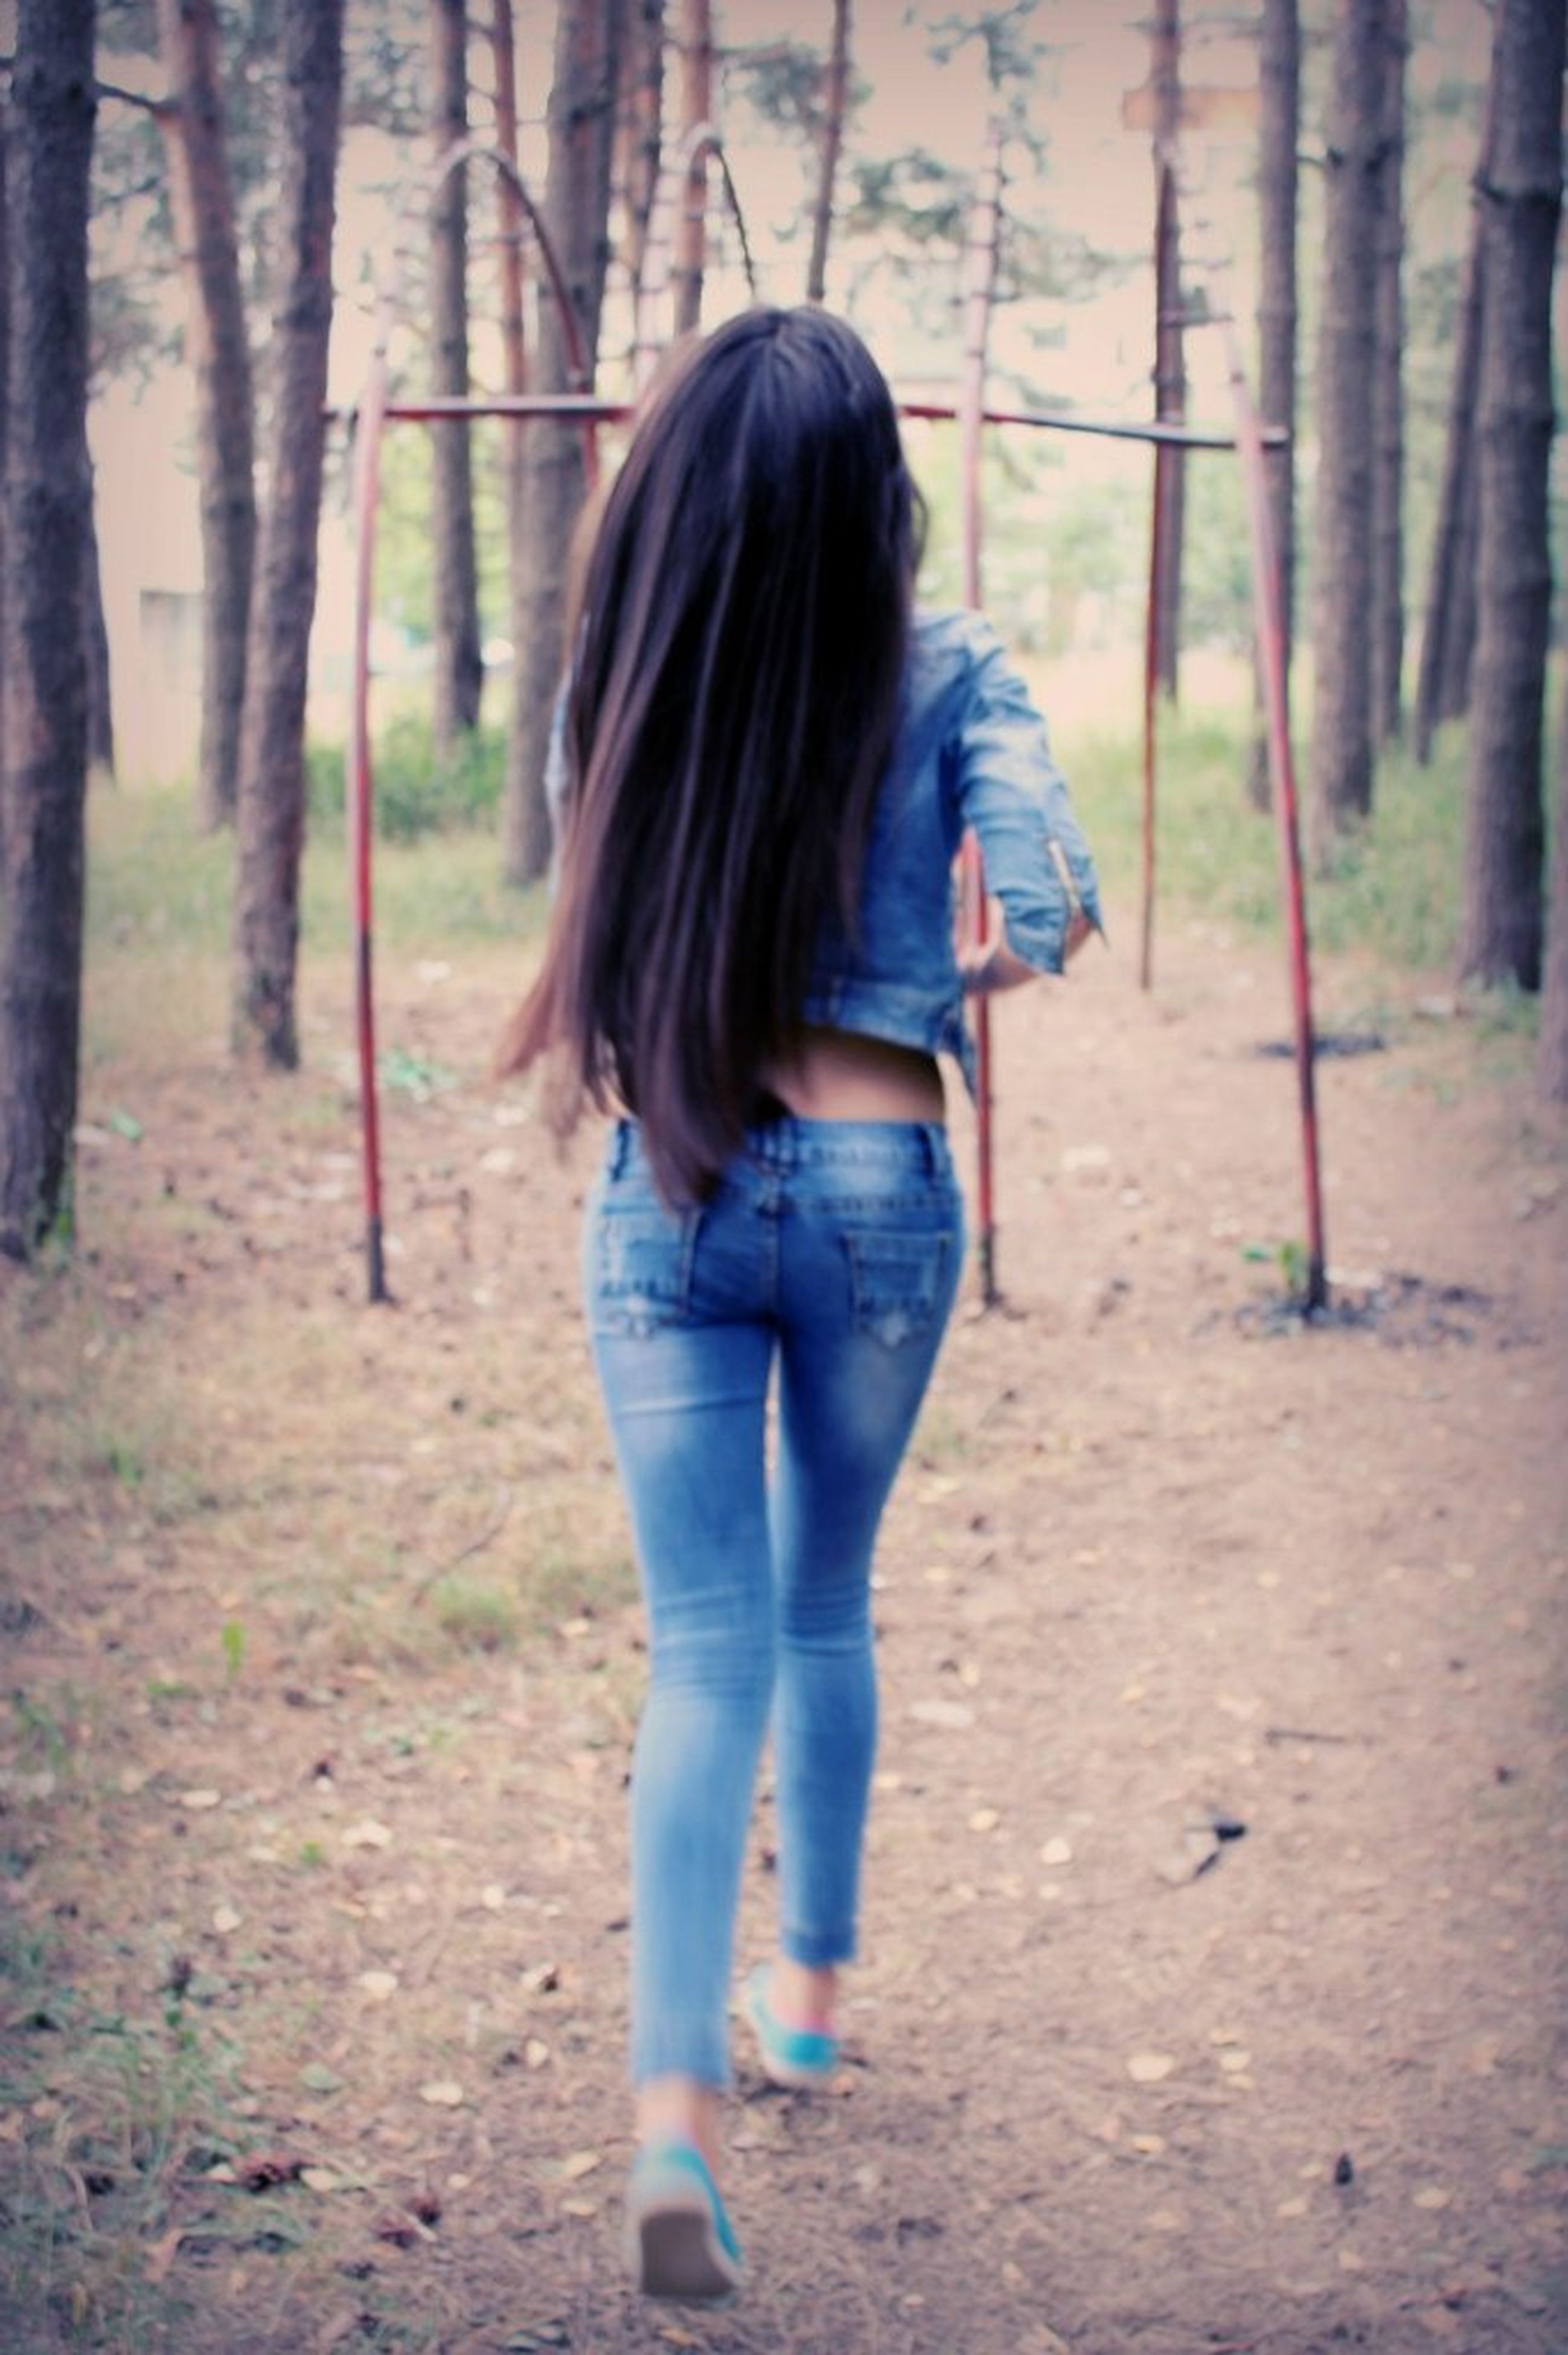 lifestyles, leisure activity, long hair, casual clothing, full length, girls, person, childhood, standing, young women, rear view, focus on foreground, elementary age, tree, blond hair, three quarter length, young adult, field